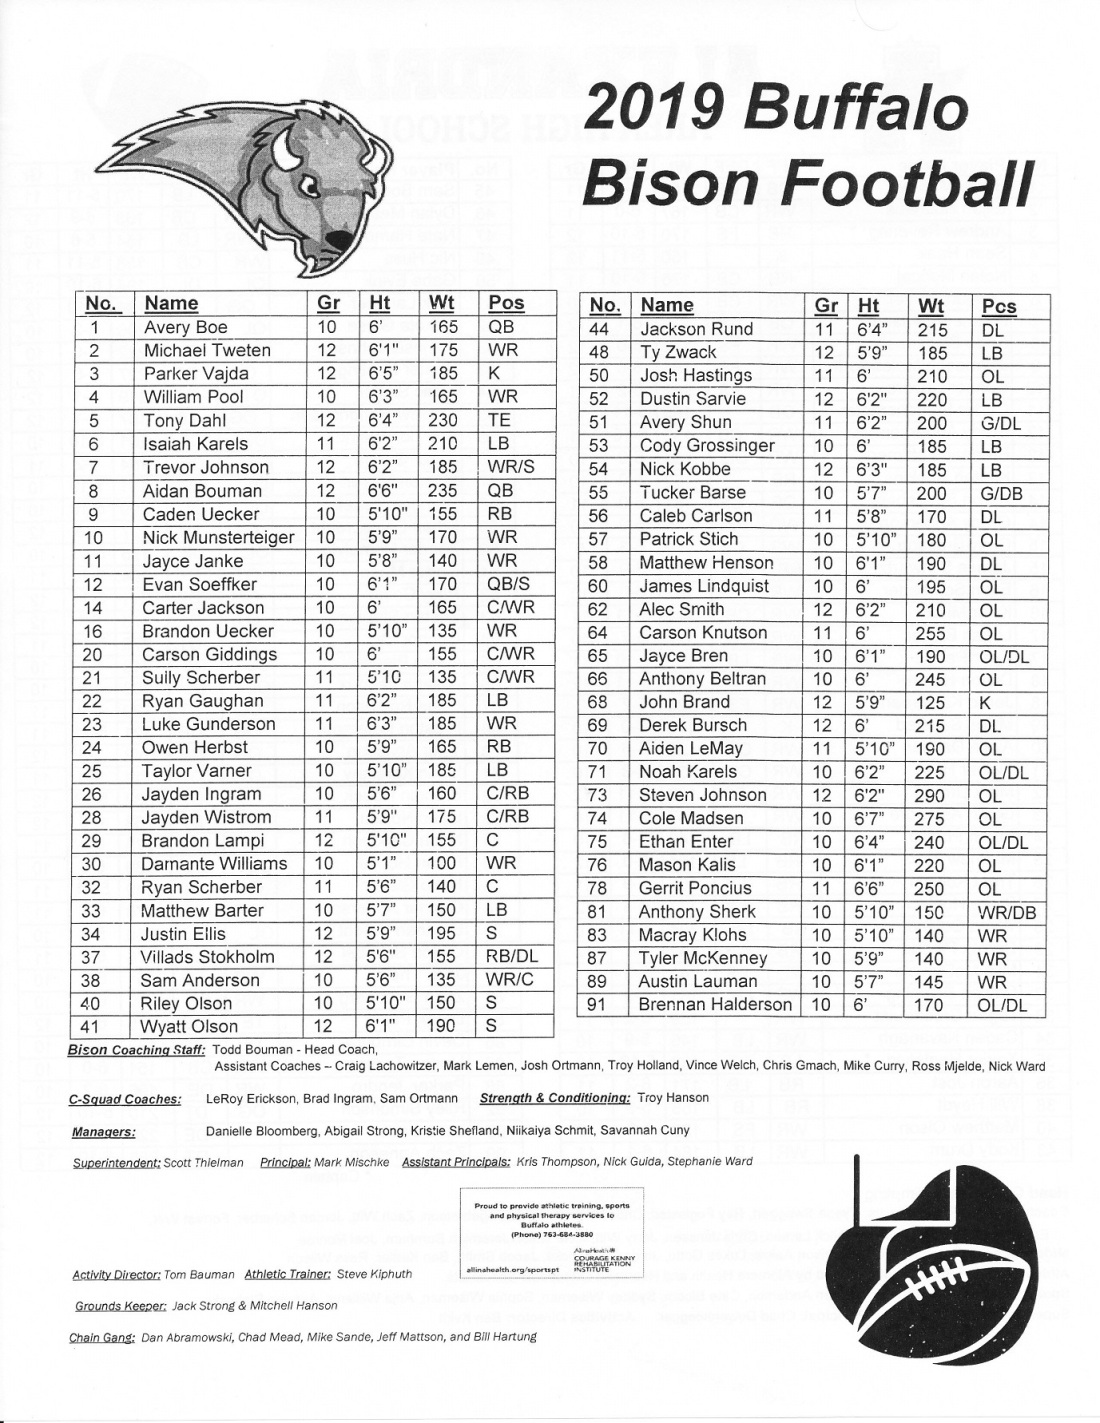 football roster2 - Copy